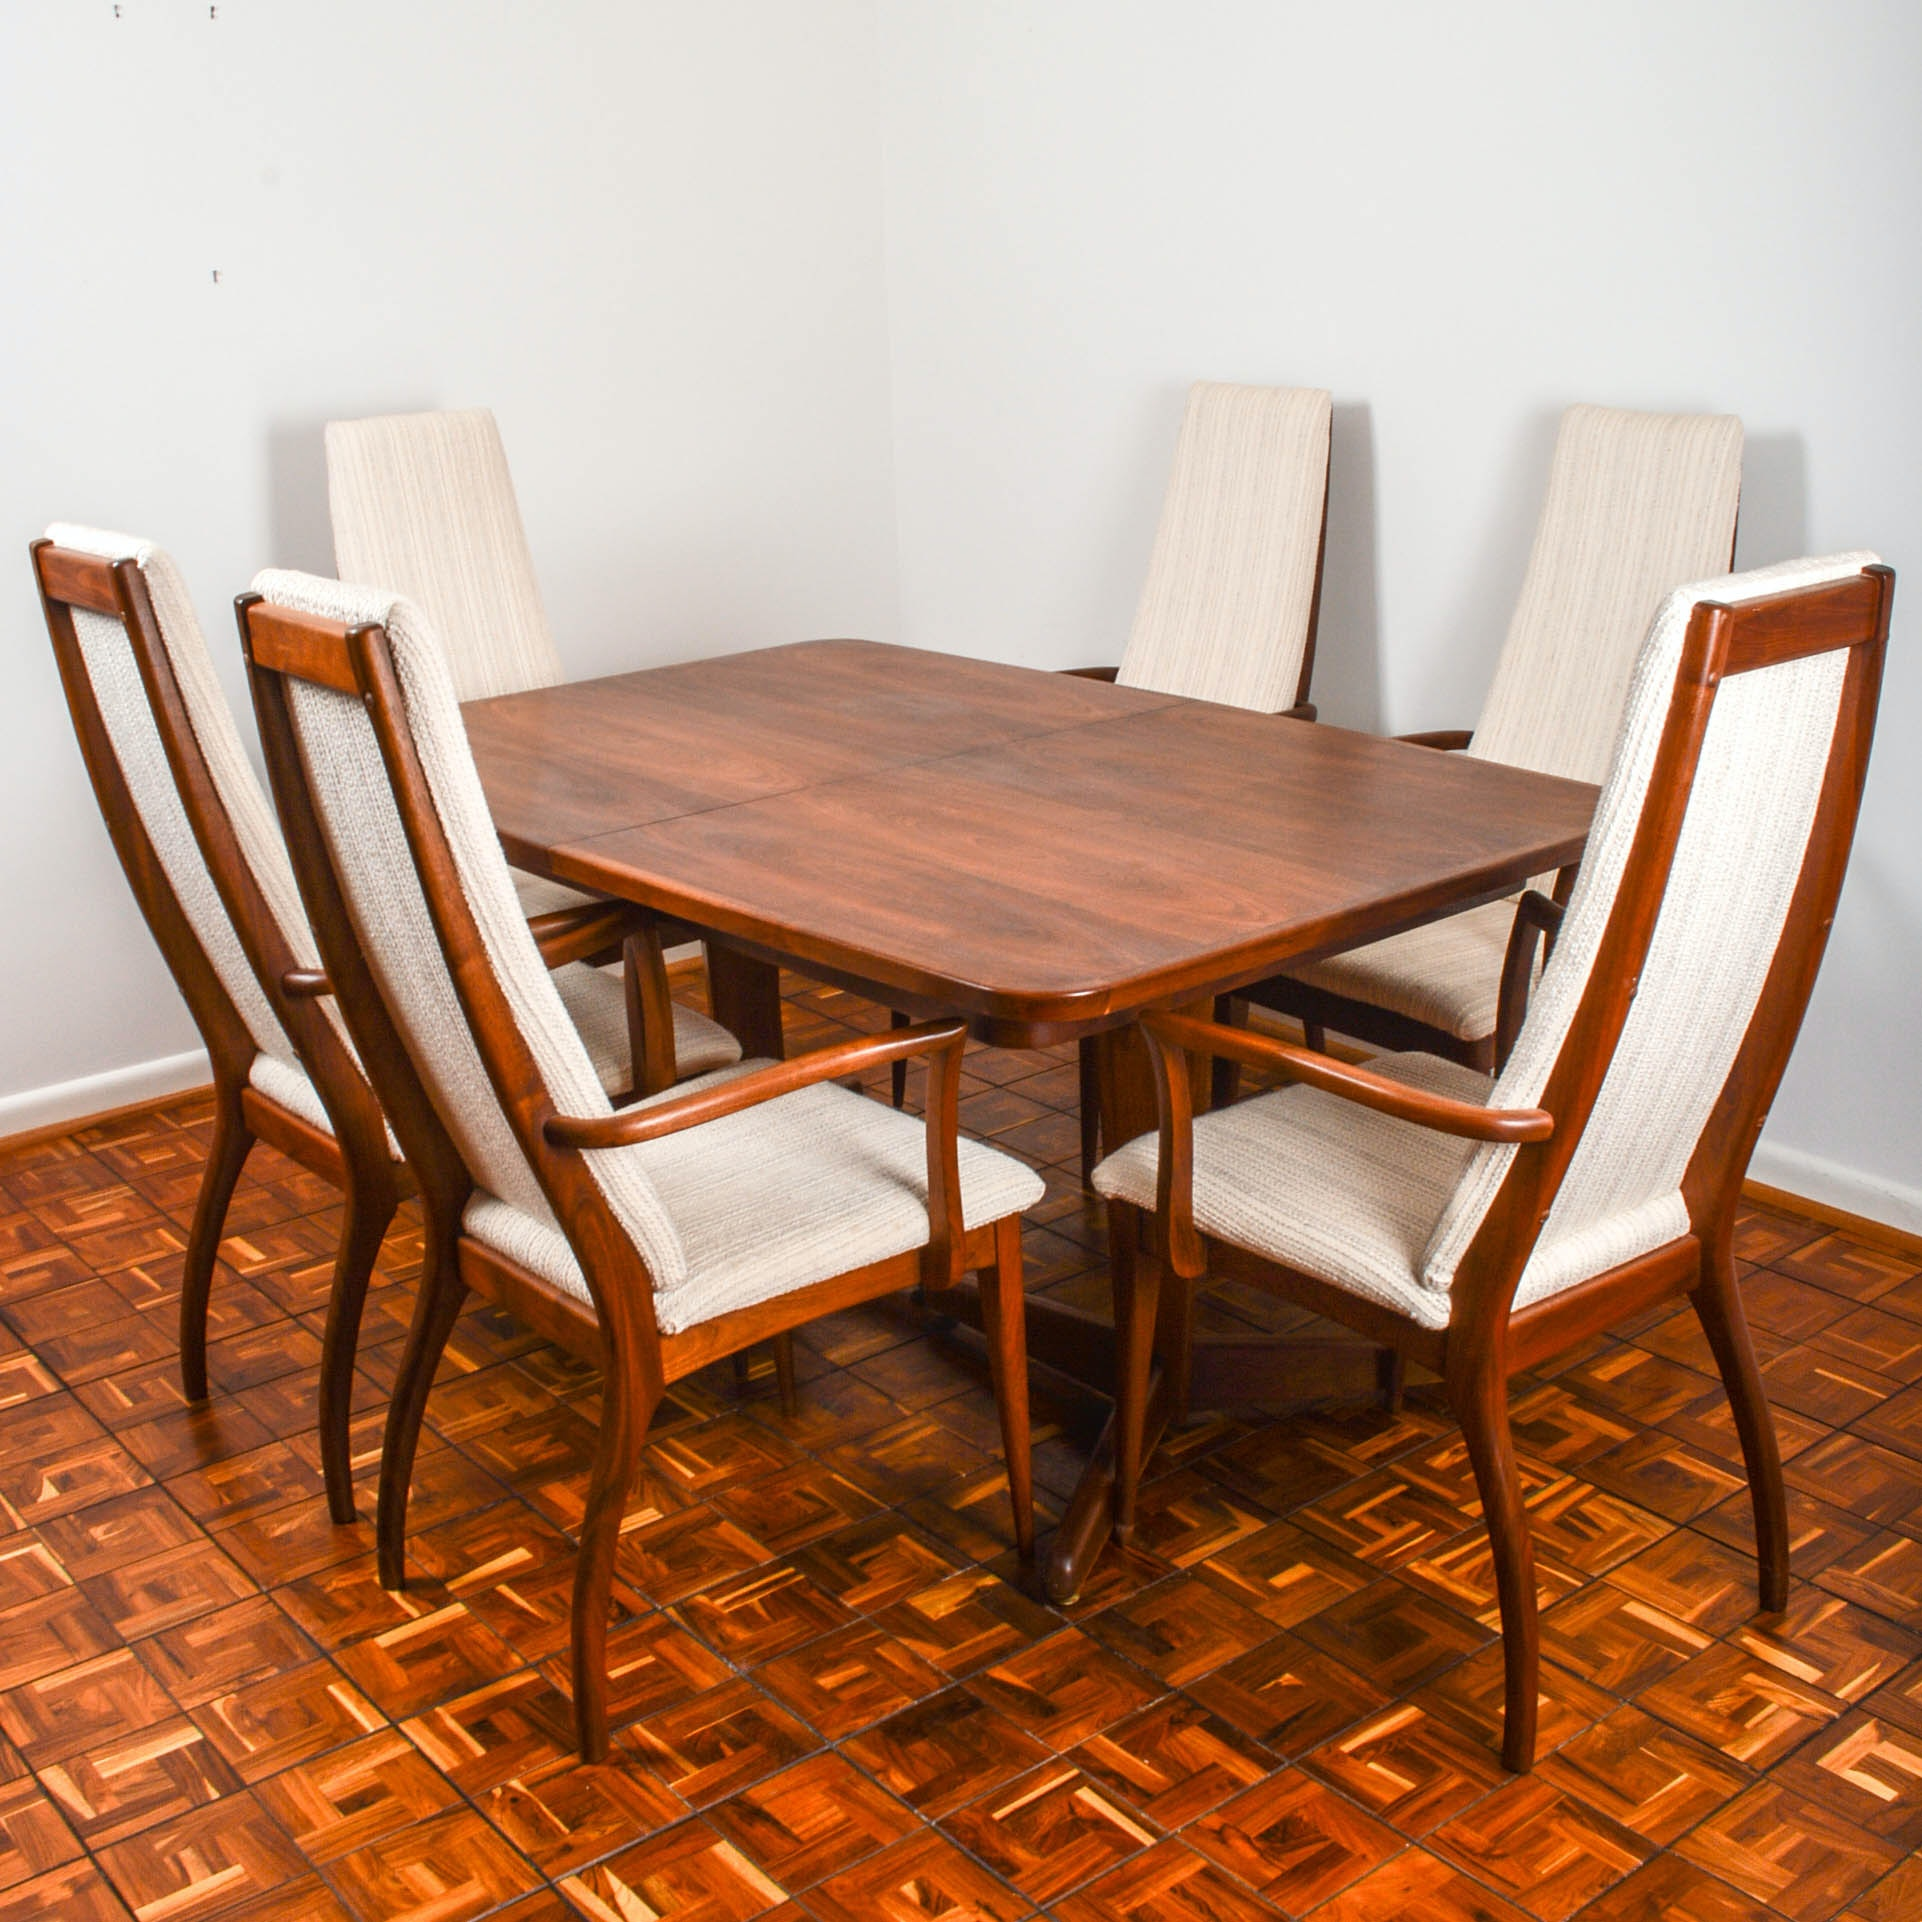 Otmar Handcrafted Danish Modern Dining Table and Six Chairs